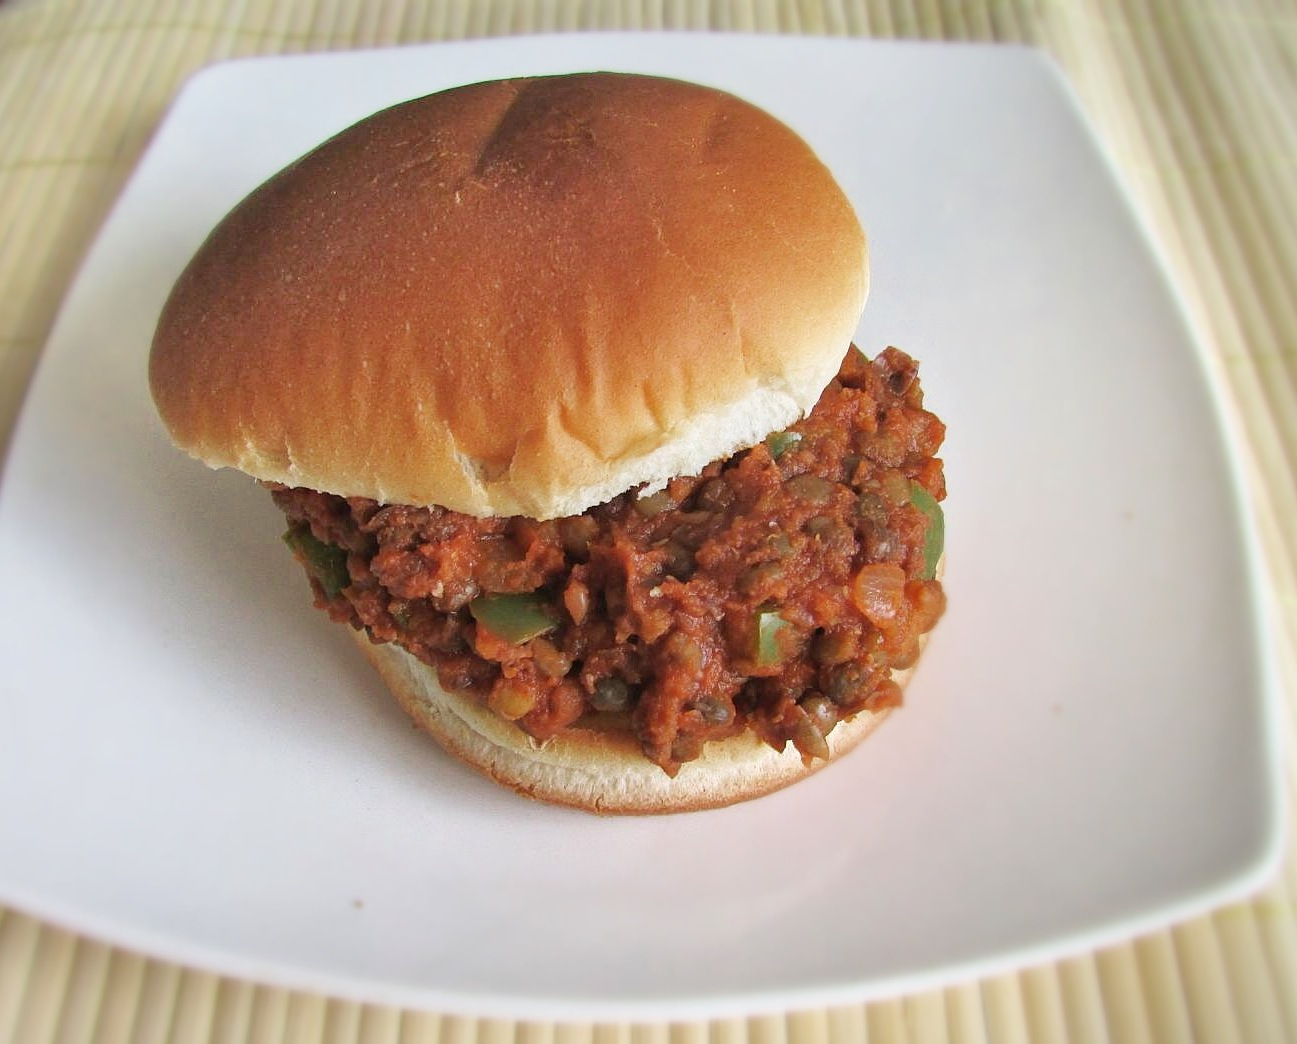 Vegan Lentil Sloppy Joes - The Skinny Chick's Cookbook